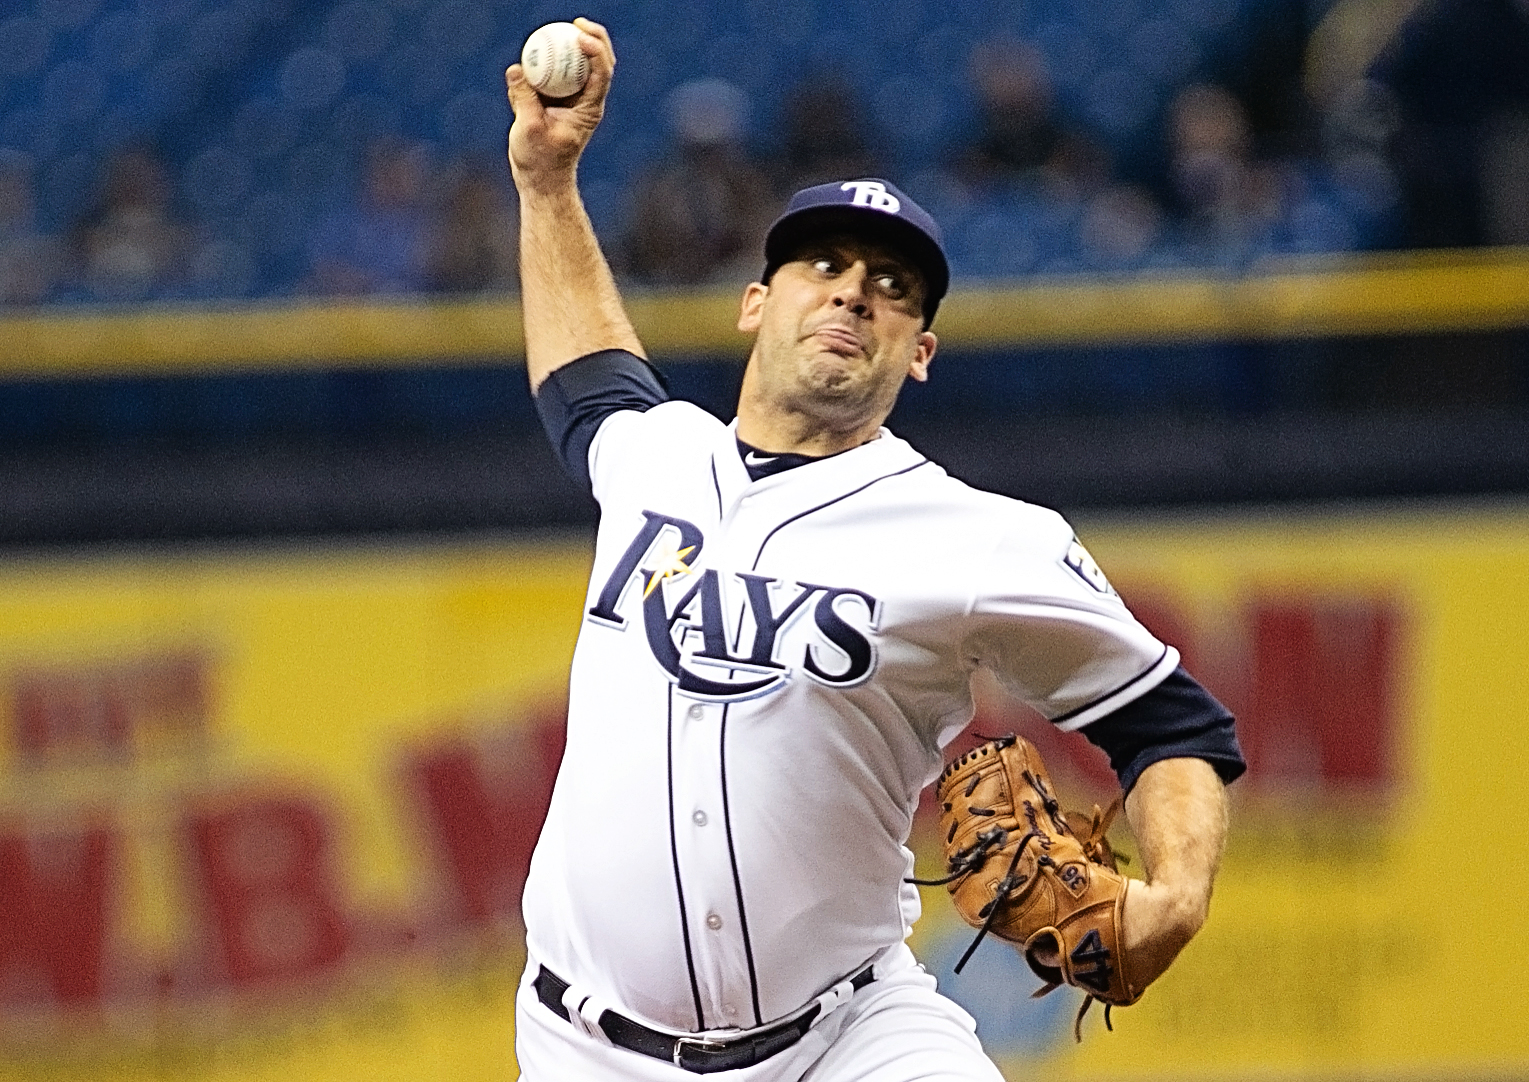 Kittredge also gave up three runs for Rays./JEFFREY S. KING